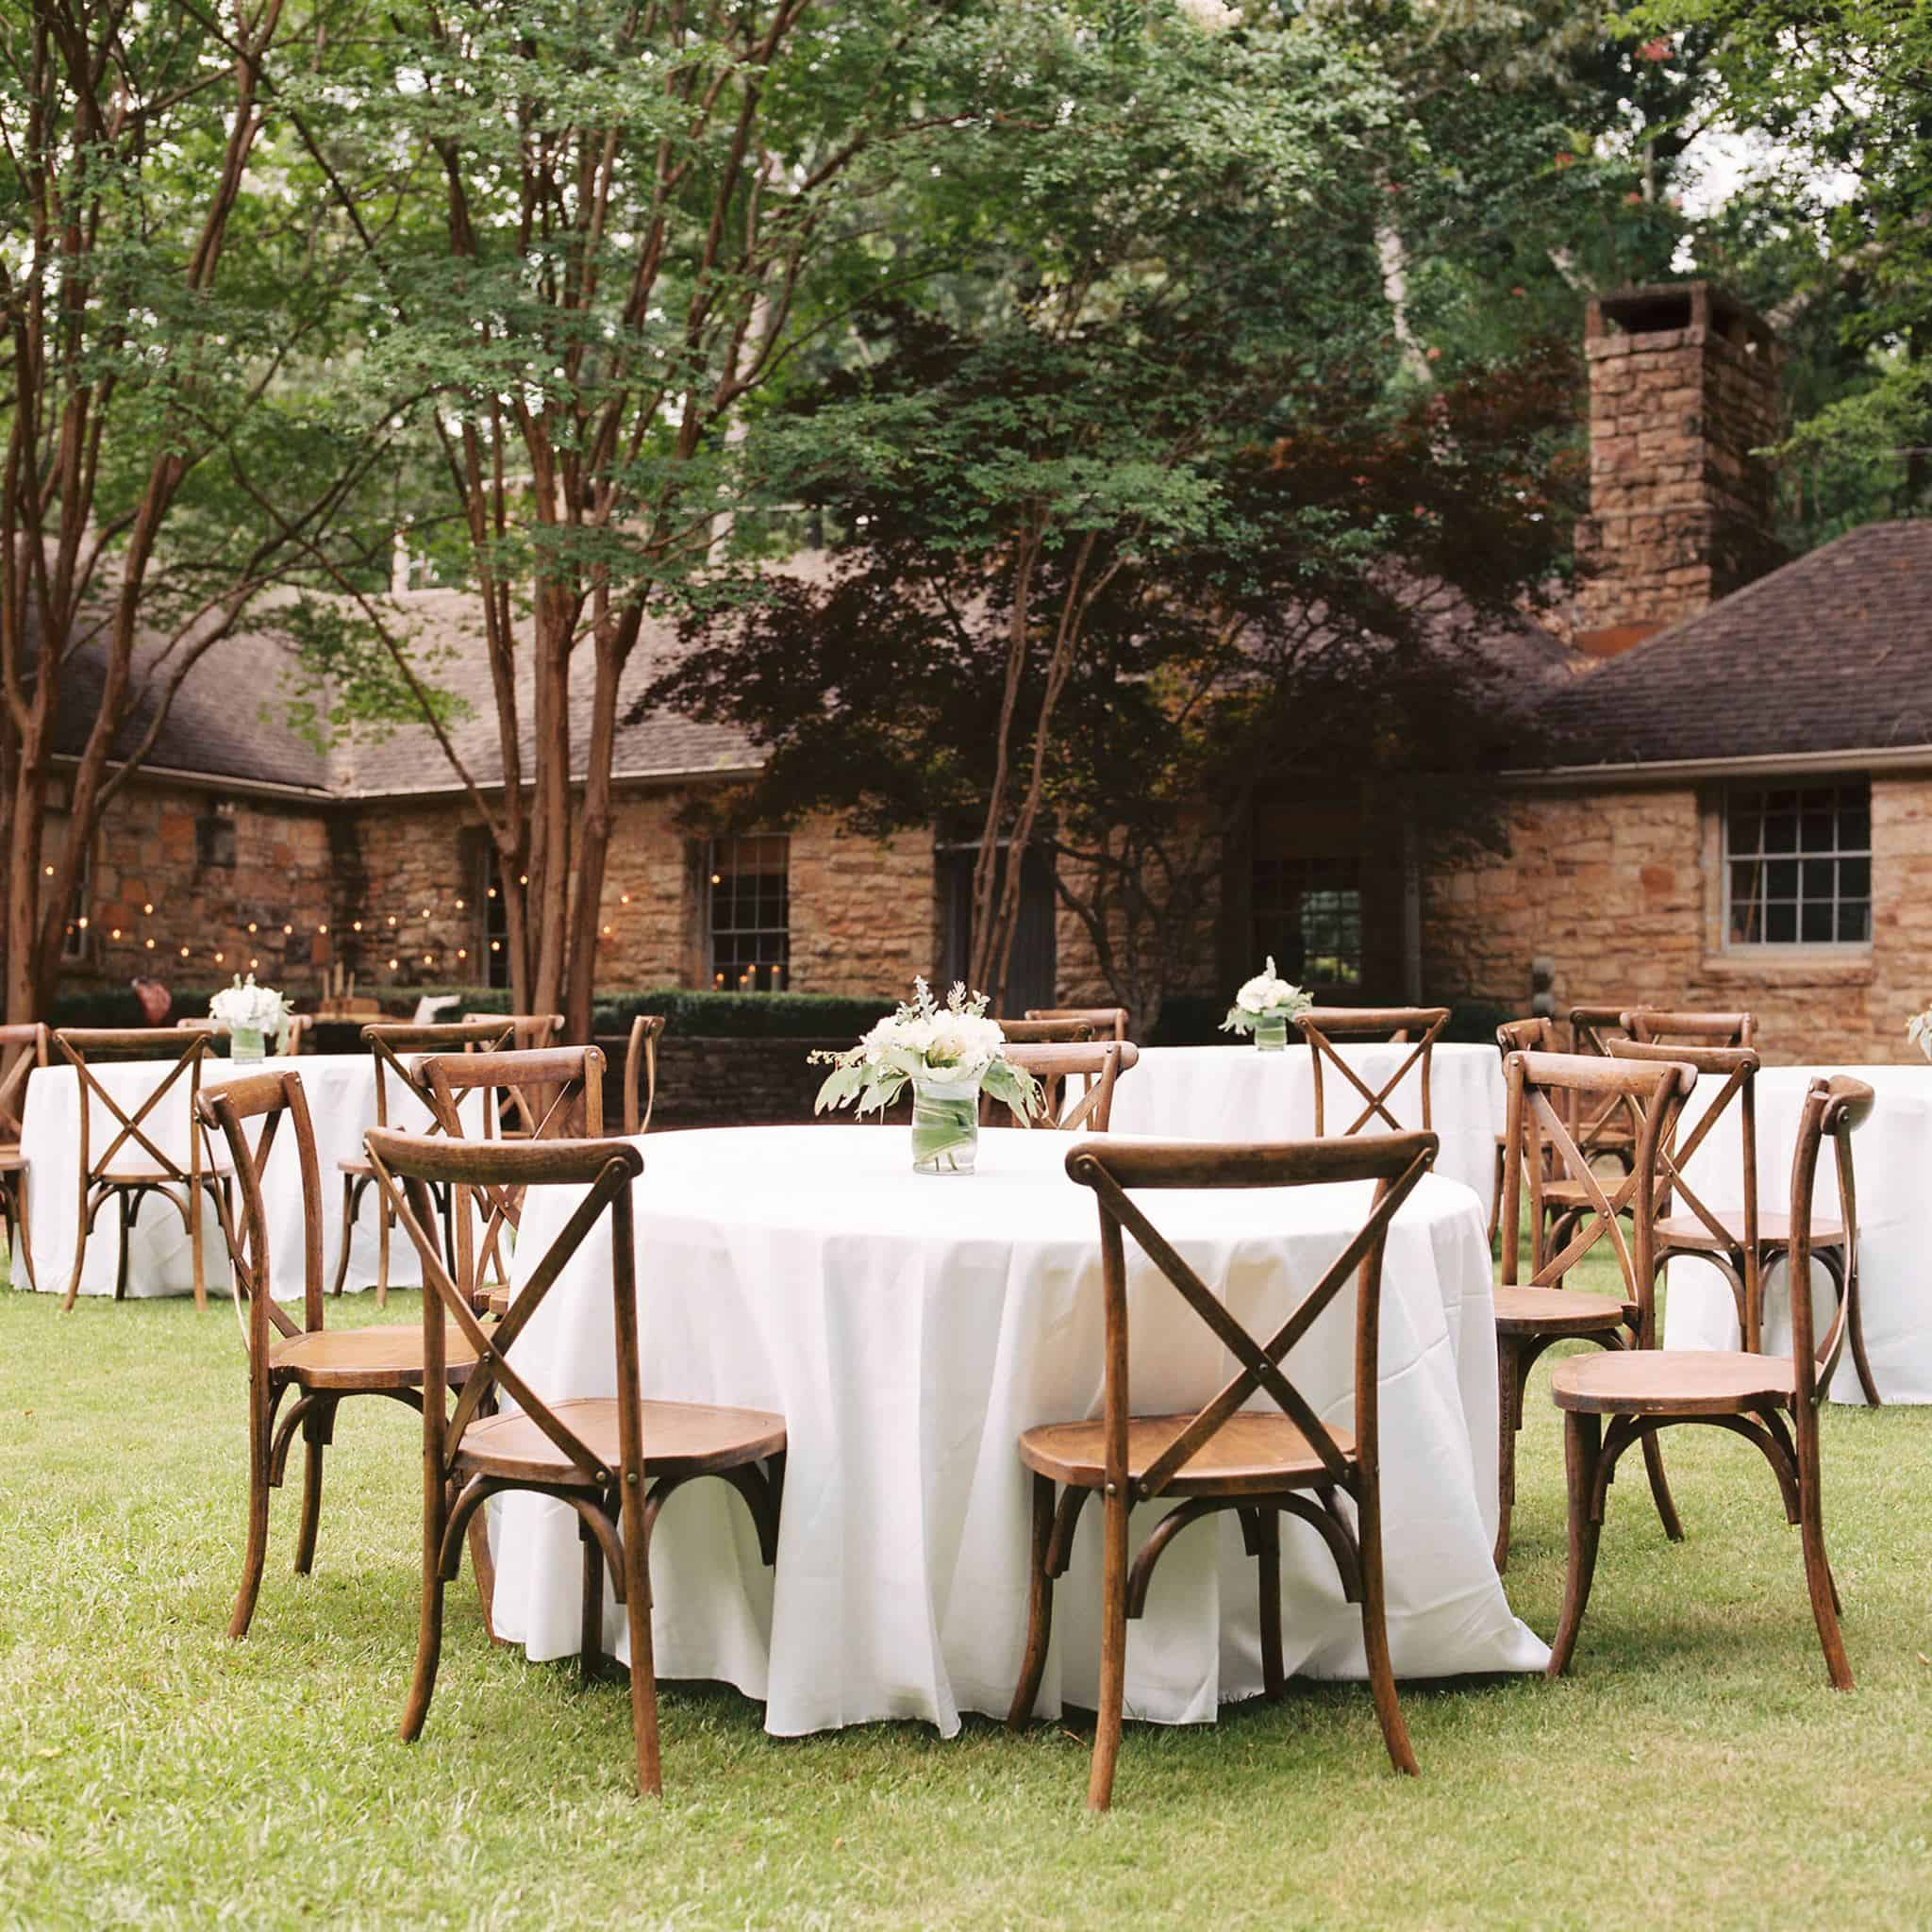 The Birmingham Zoo Wedding Venues in Alabama